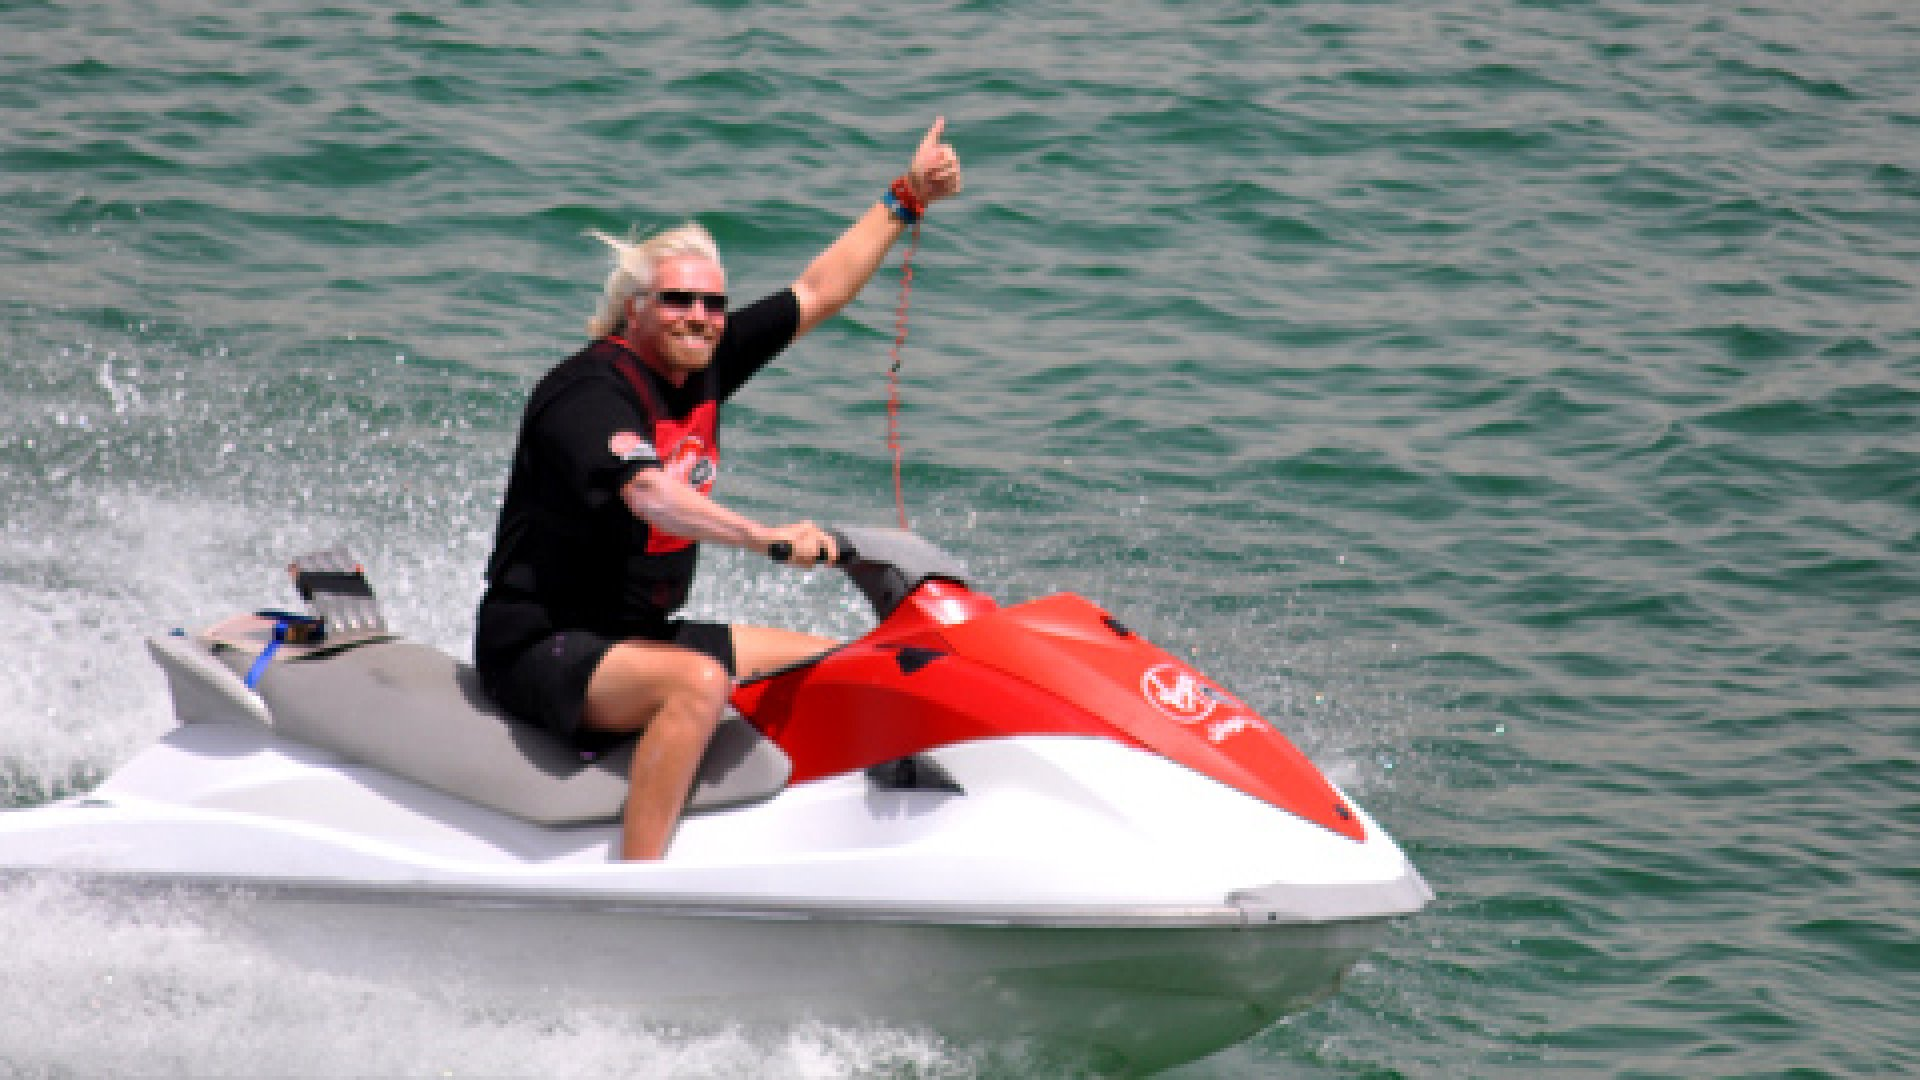 Richard Branson: You're Taking Your Business Too Seriously